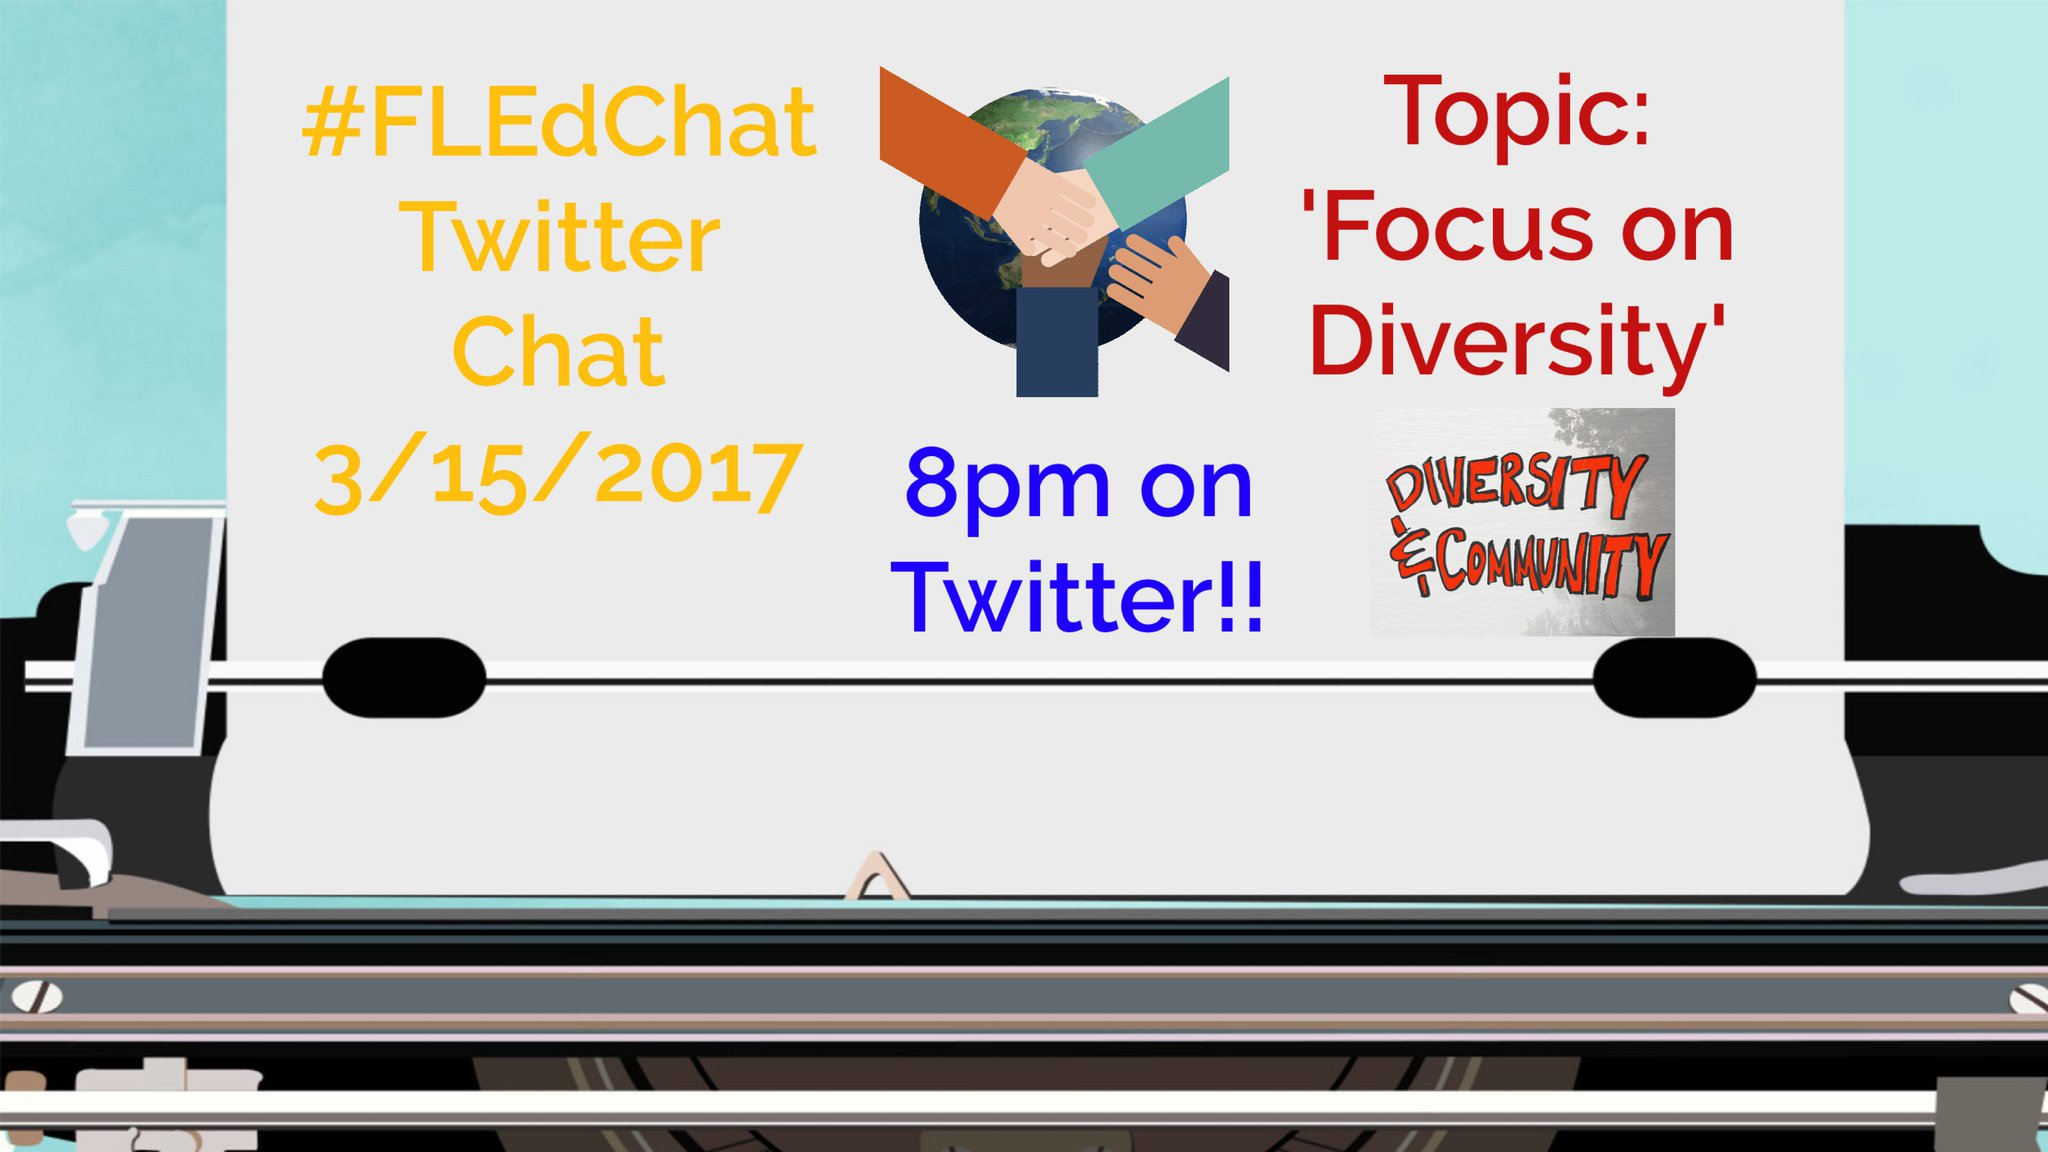 Welcome to #FLEdChat. Happy to go further with diversity tonight. Several questions ahead! Stay close! I am your honored moderator tonight! https://t.co/JtpJ0LCuyB